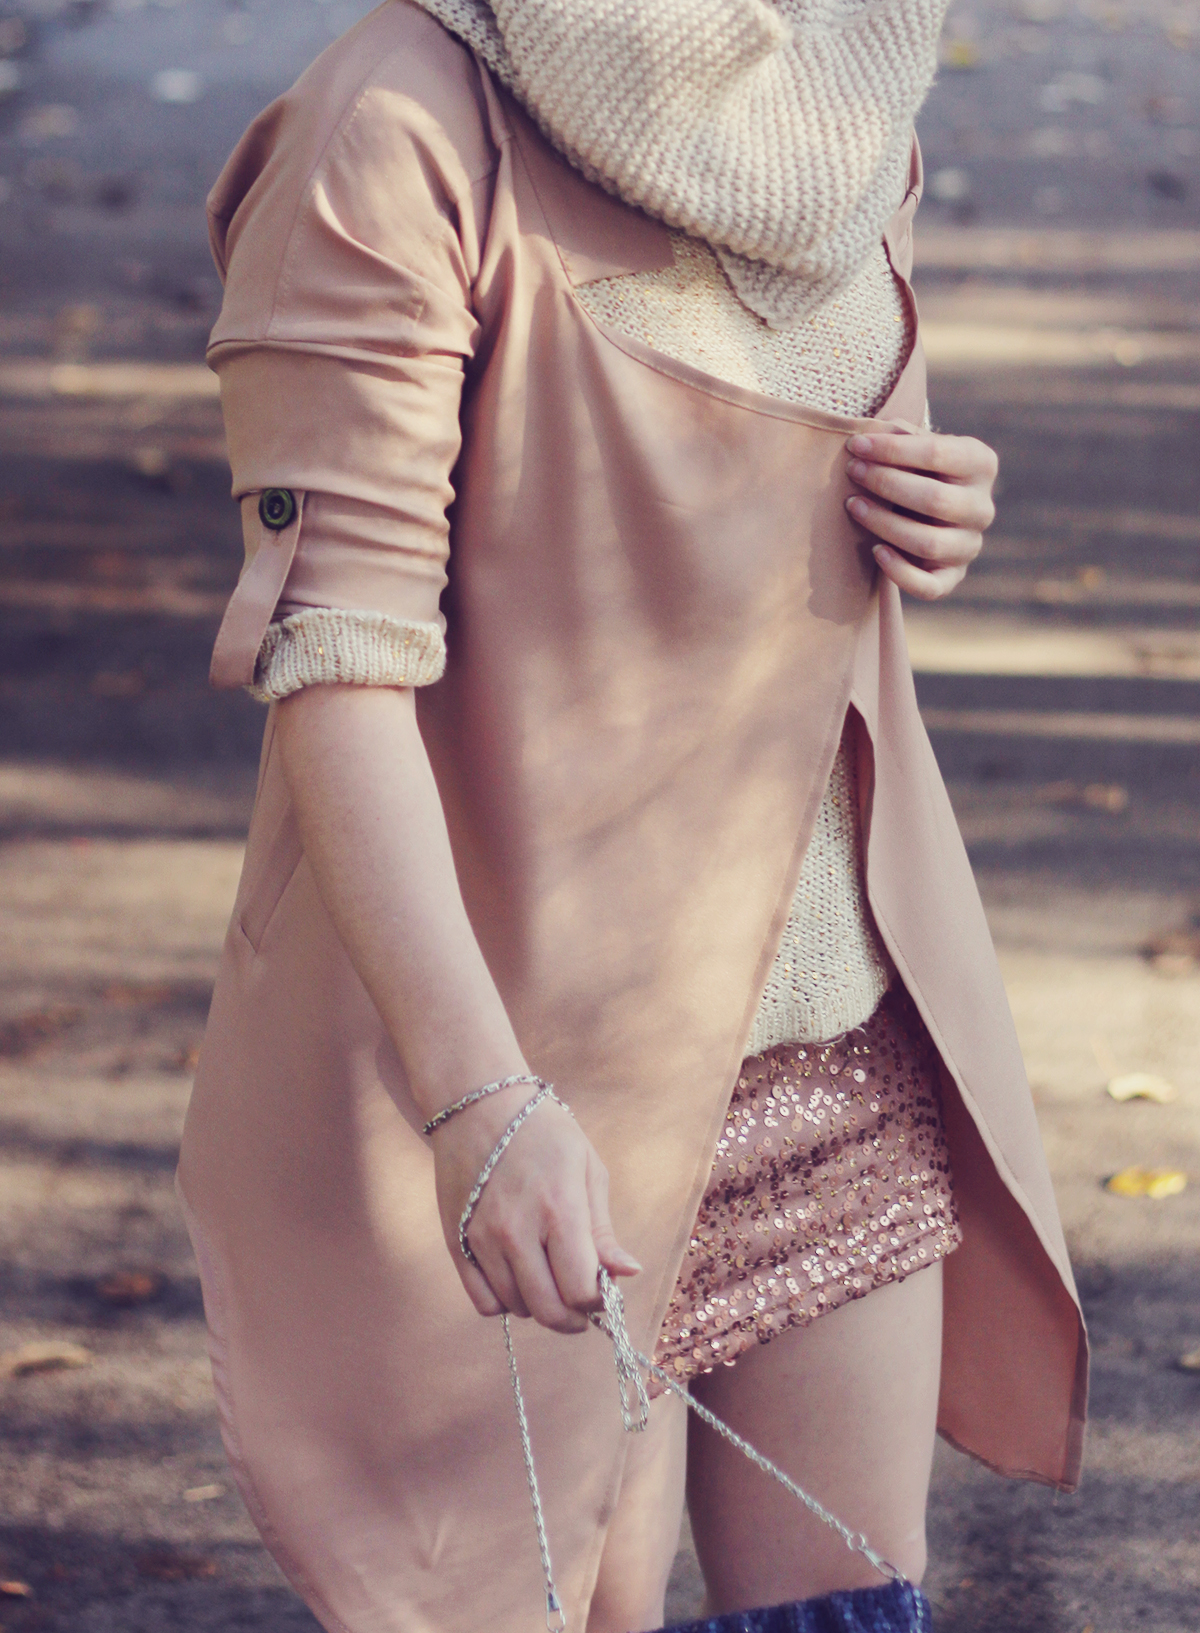 zaful-nude-trench-coat-and-sparkly-knits